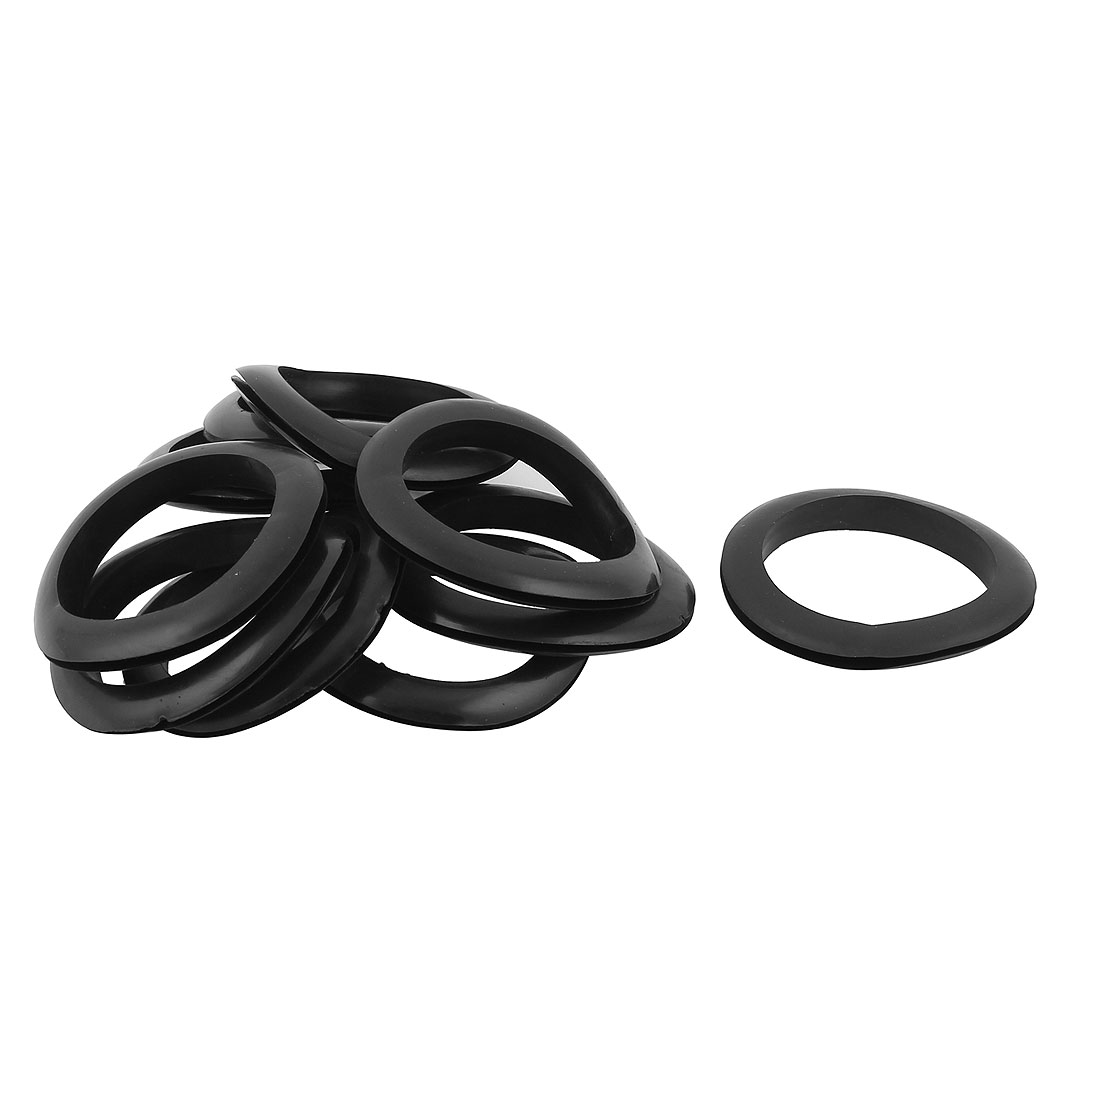 10pcs Black Rubber Grommet Electrical Cable Wire Gasket 60mmx65mm